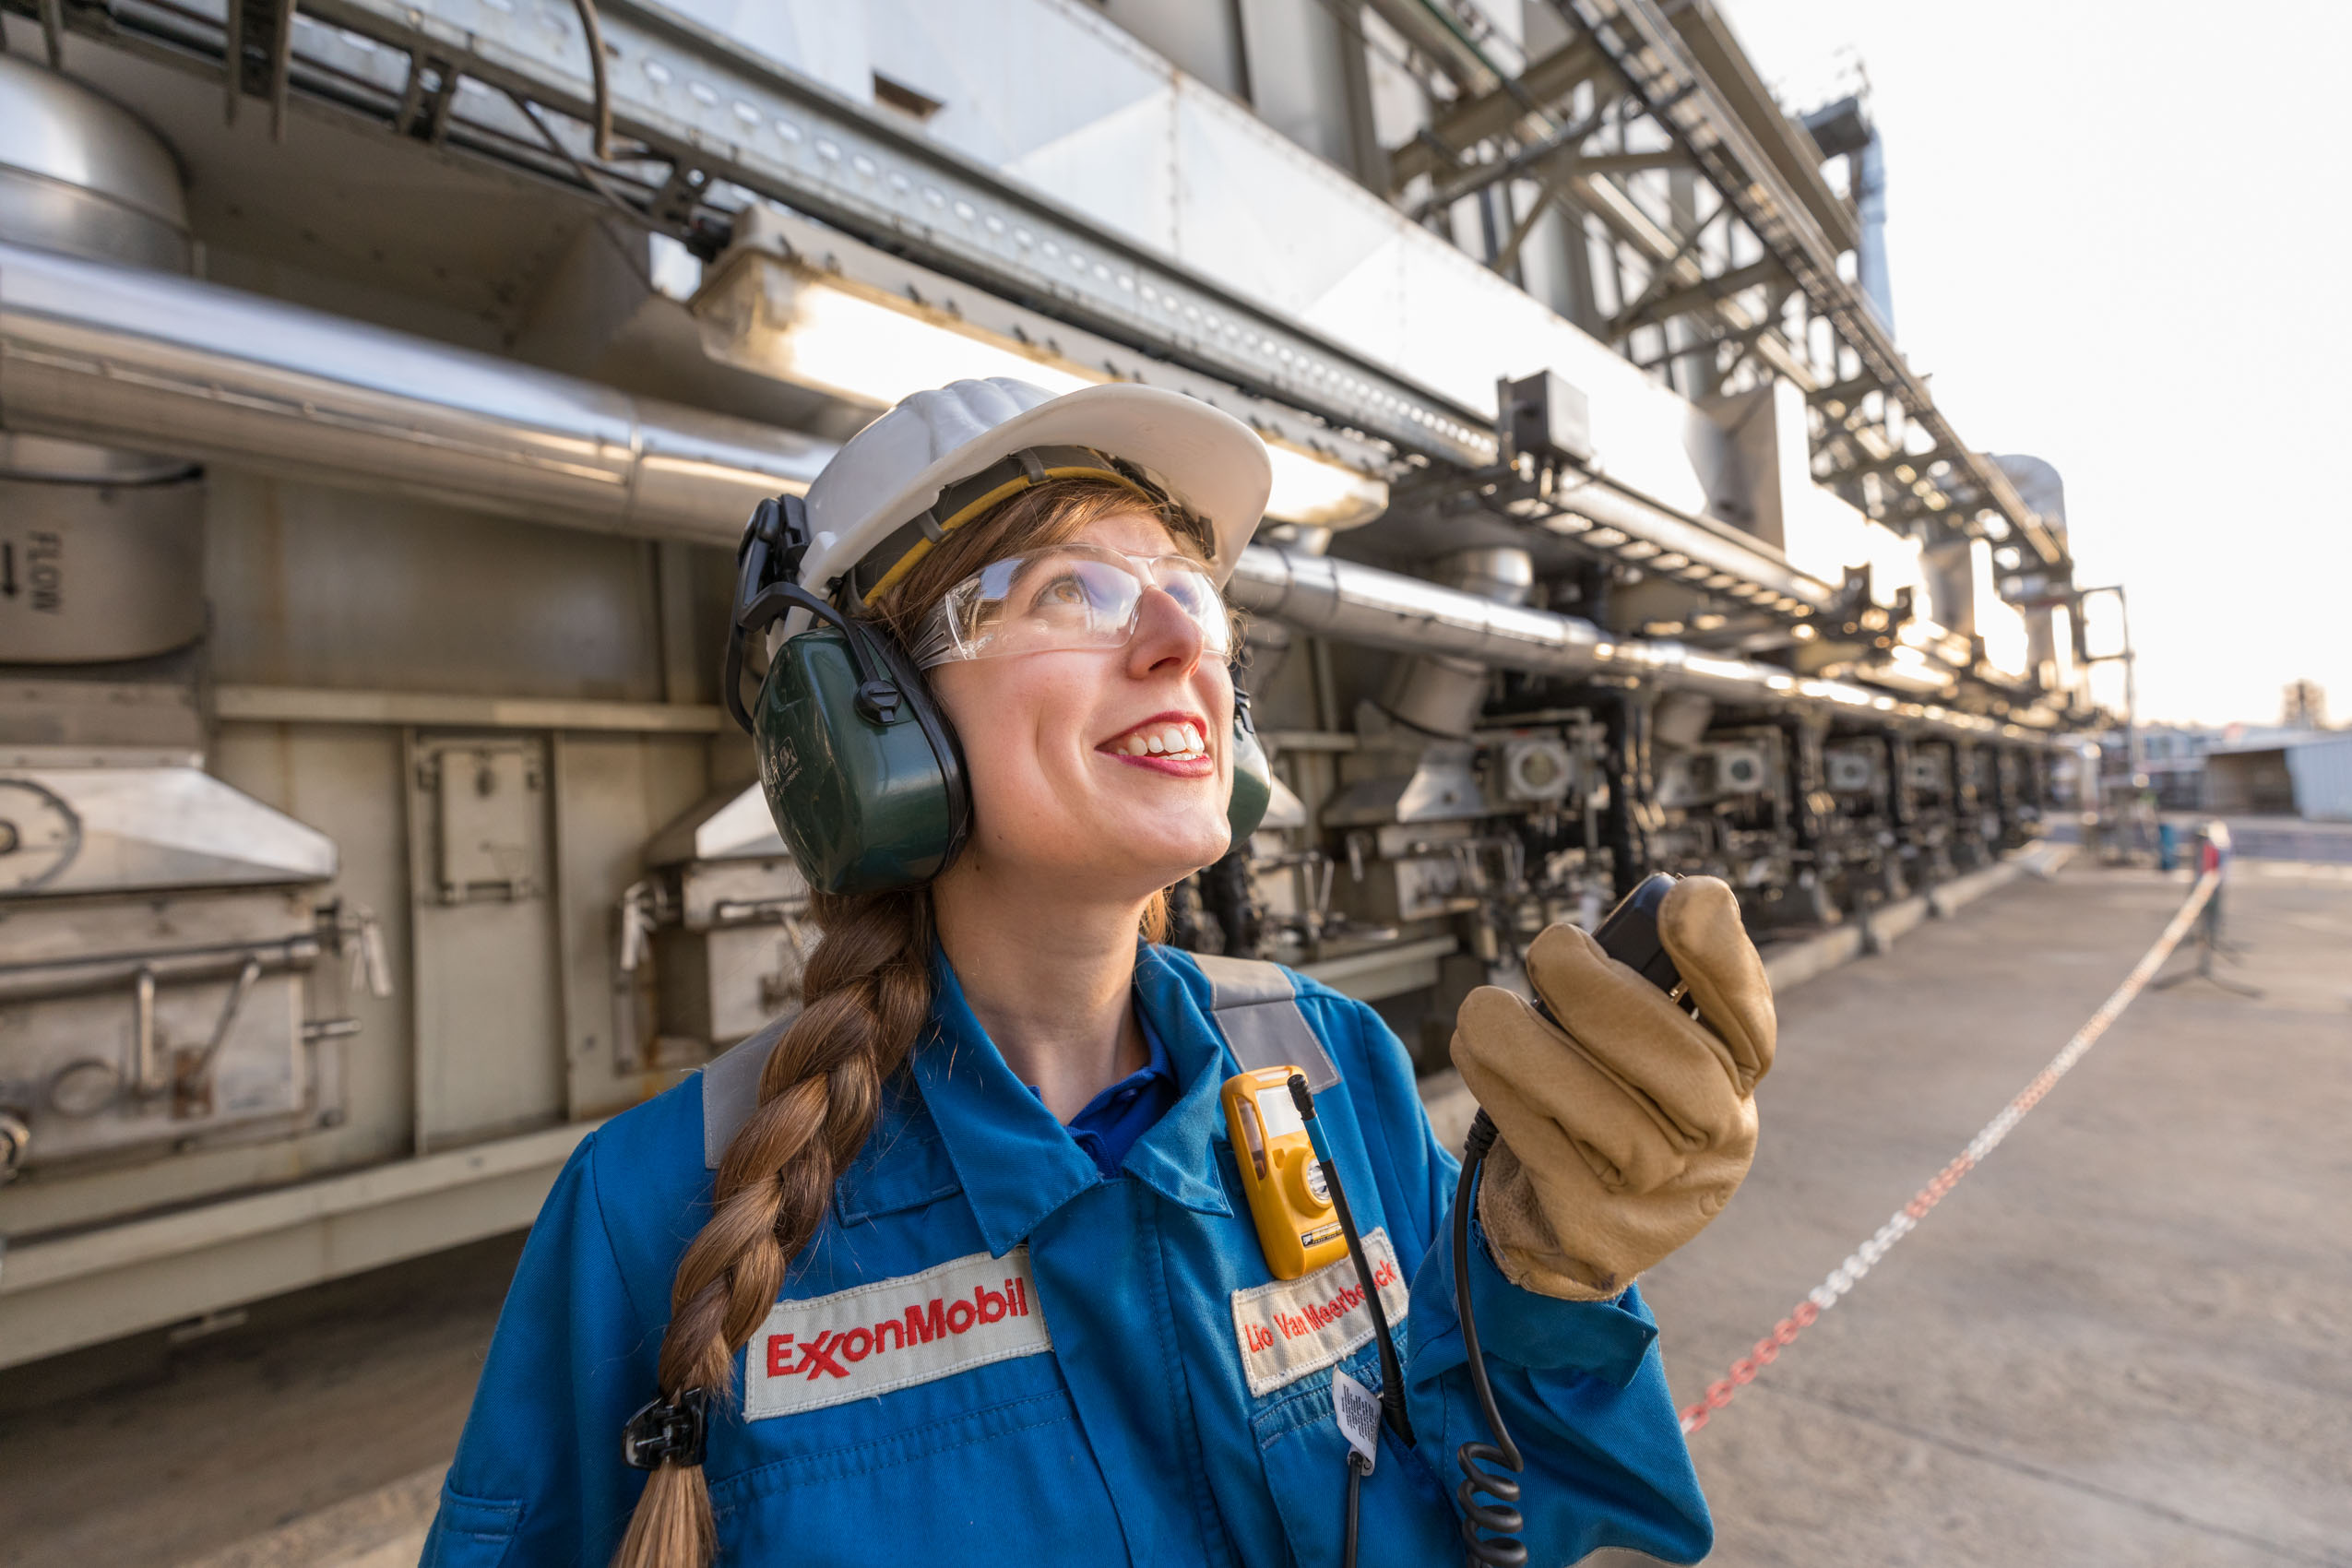 Woman at industrial facility with bright smile on radio by tech photographer Rich Crowder